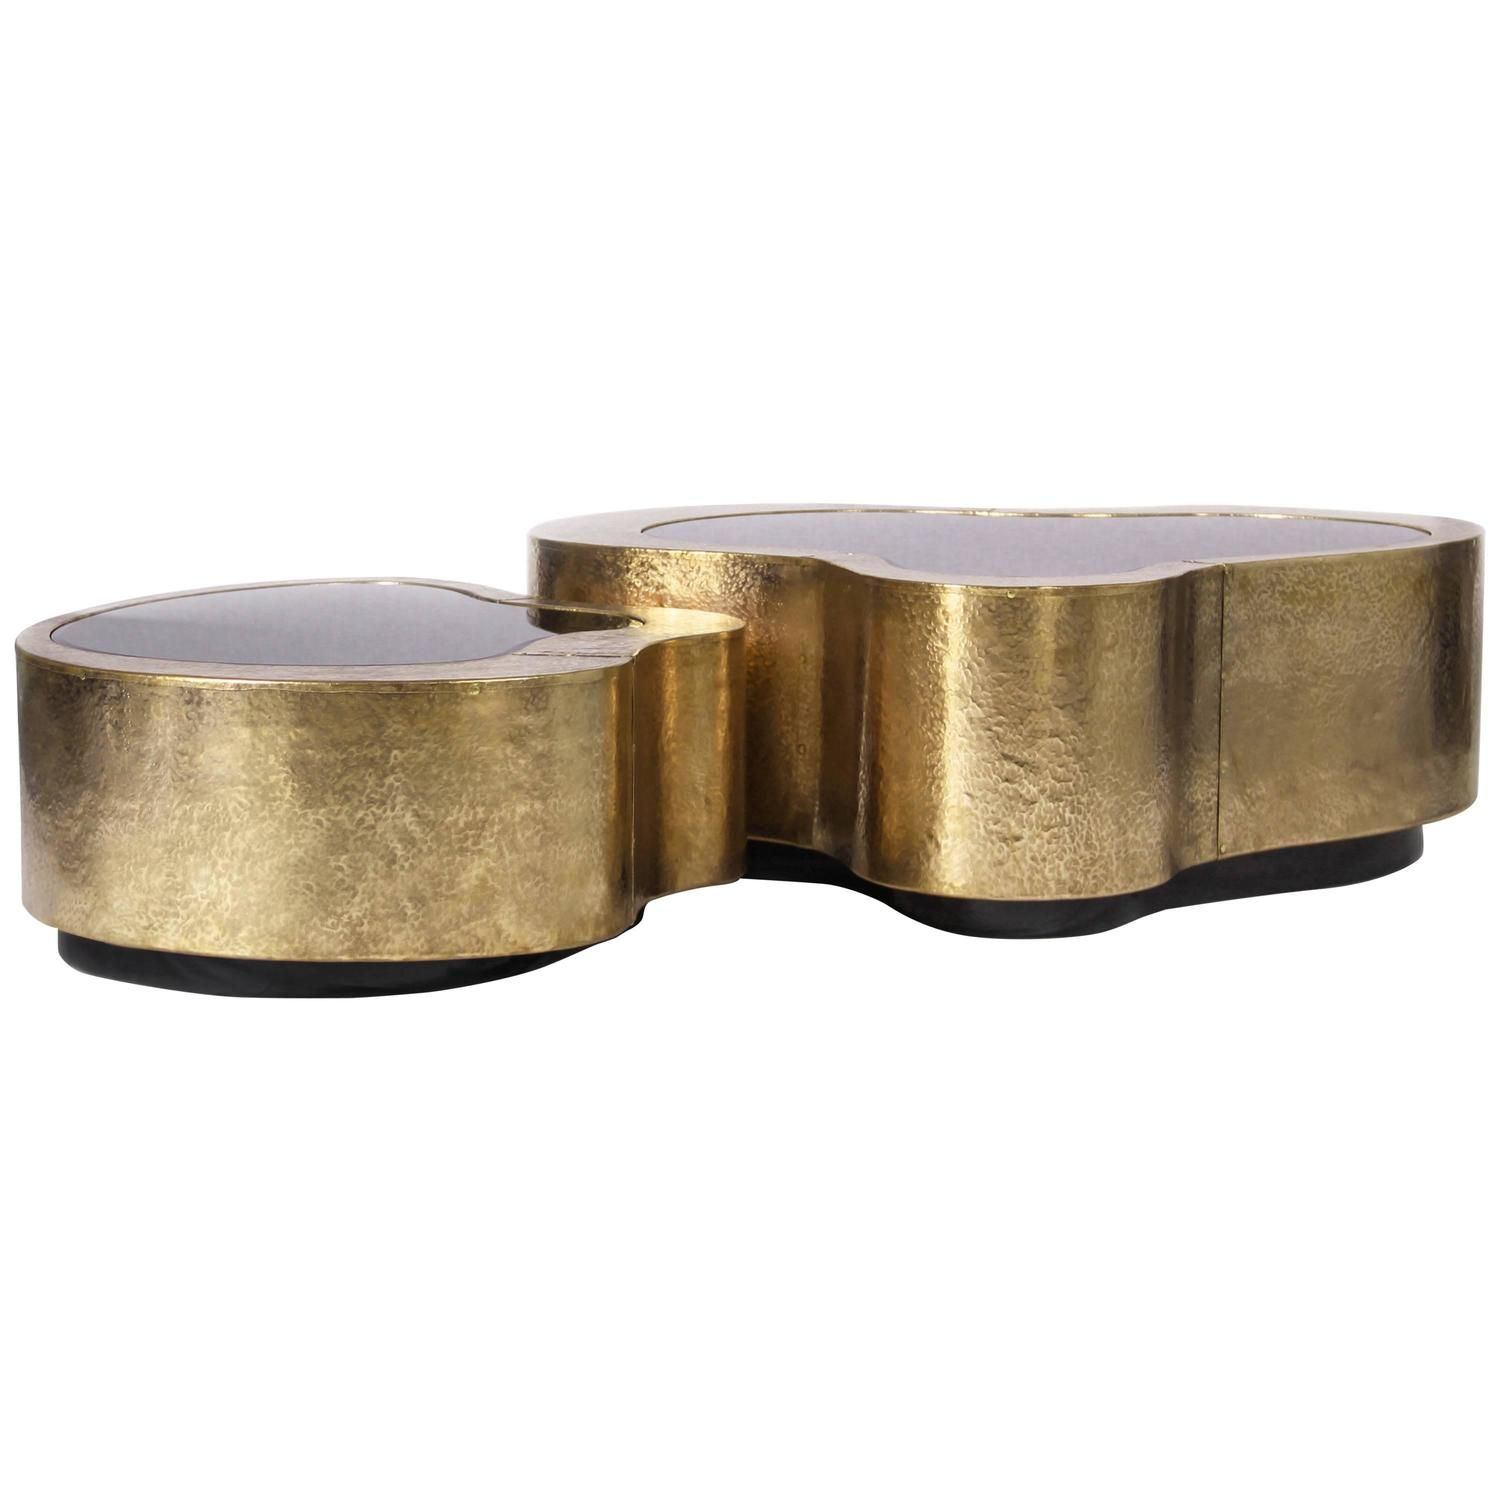 Set Of Two Curvilinear Hammered Brass, Glass Center Coffee Tables From  Europe